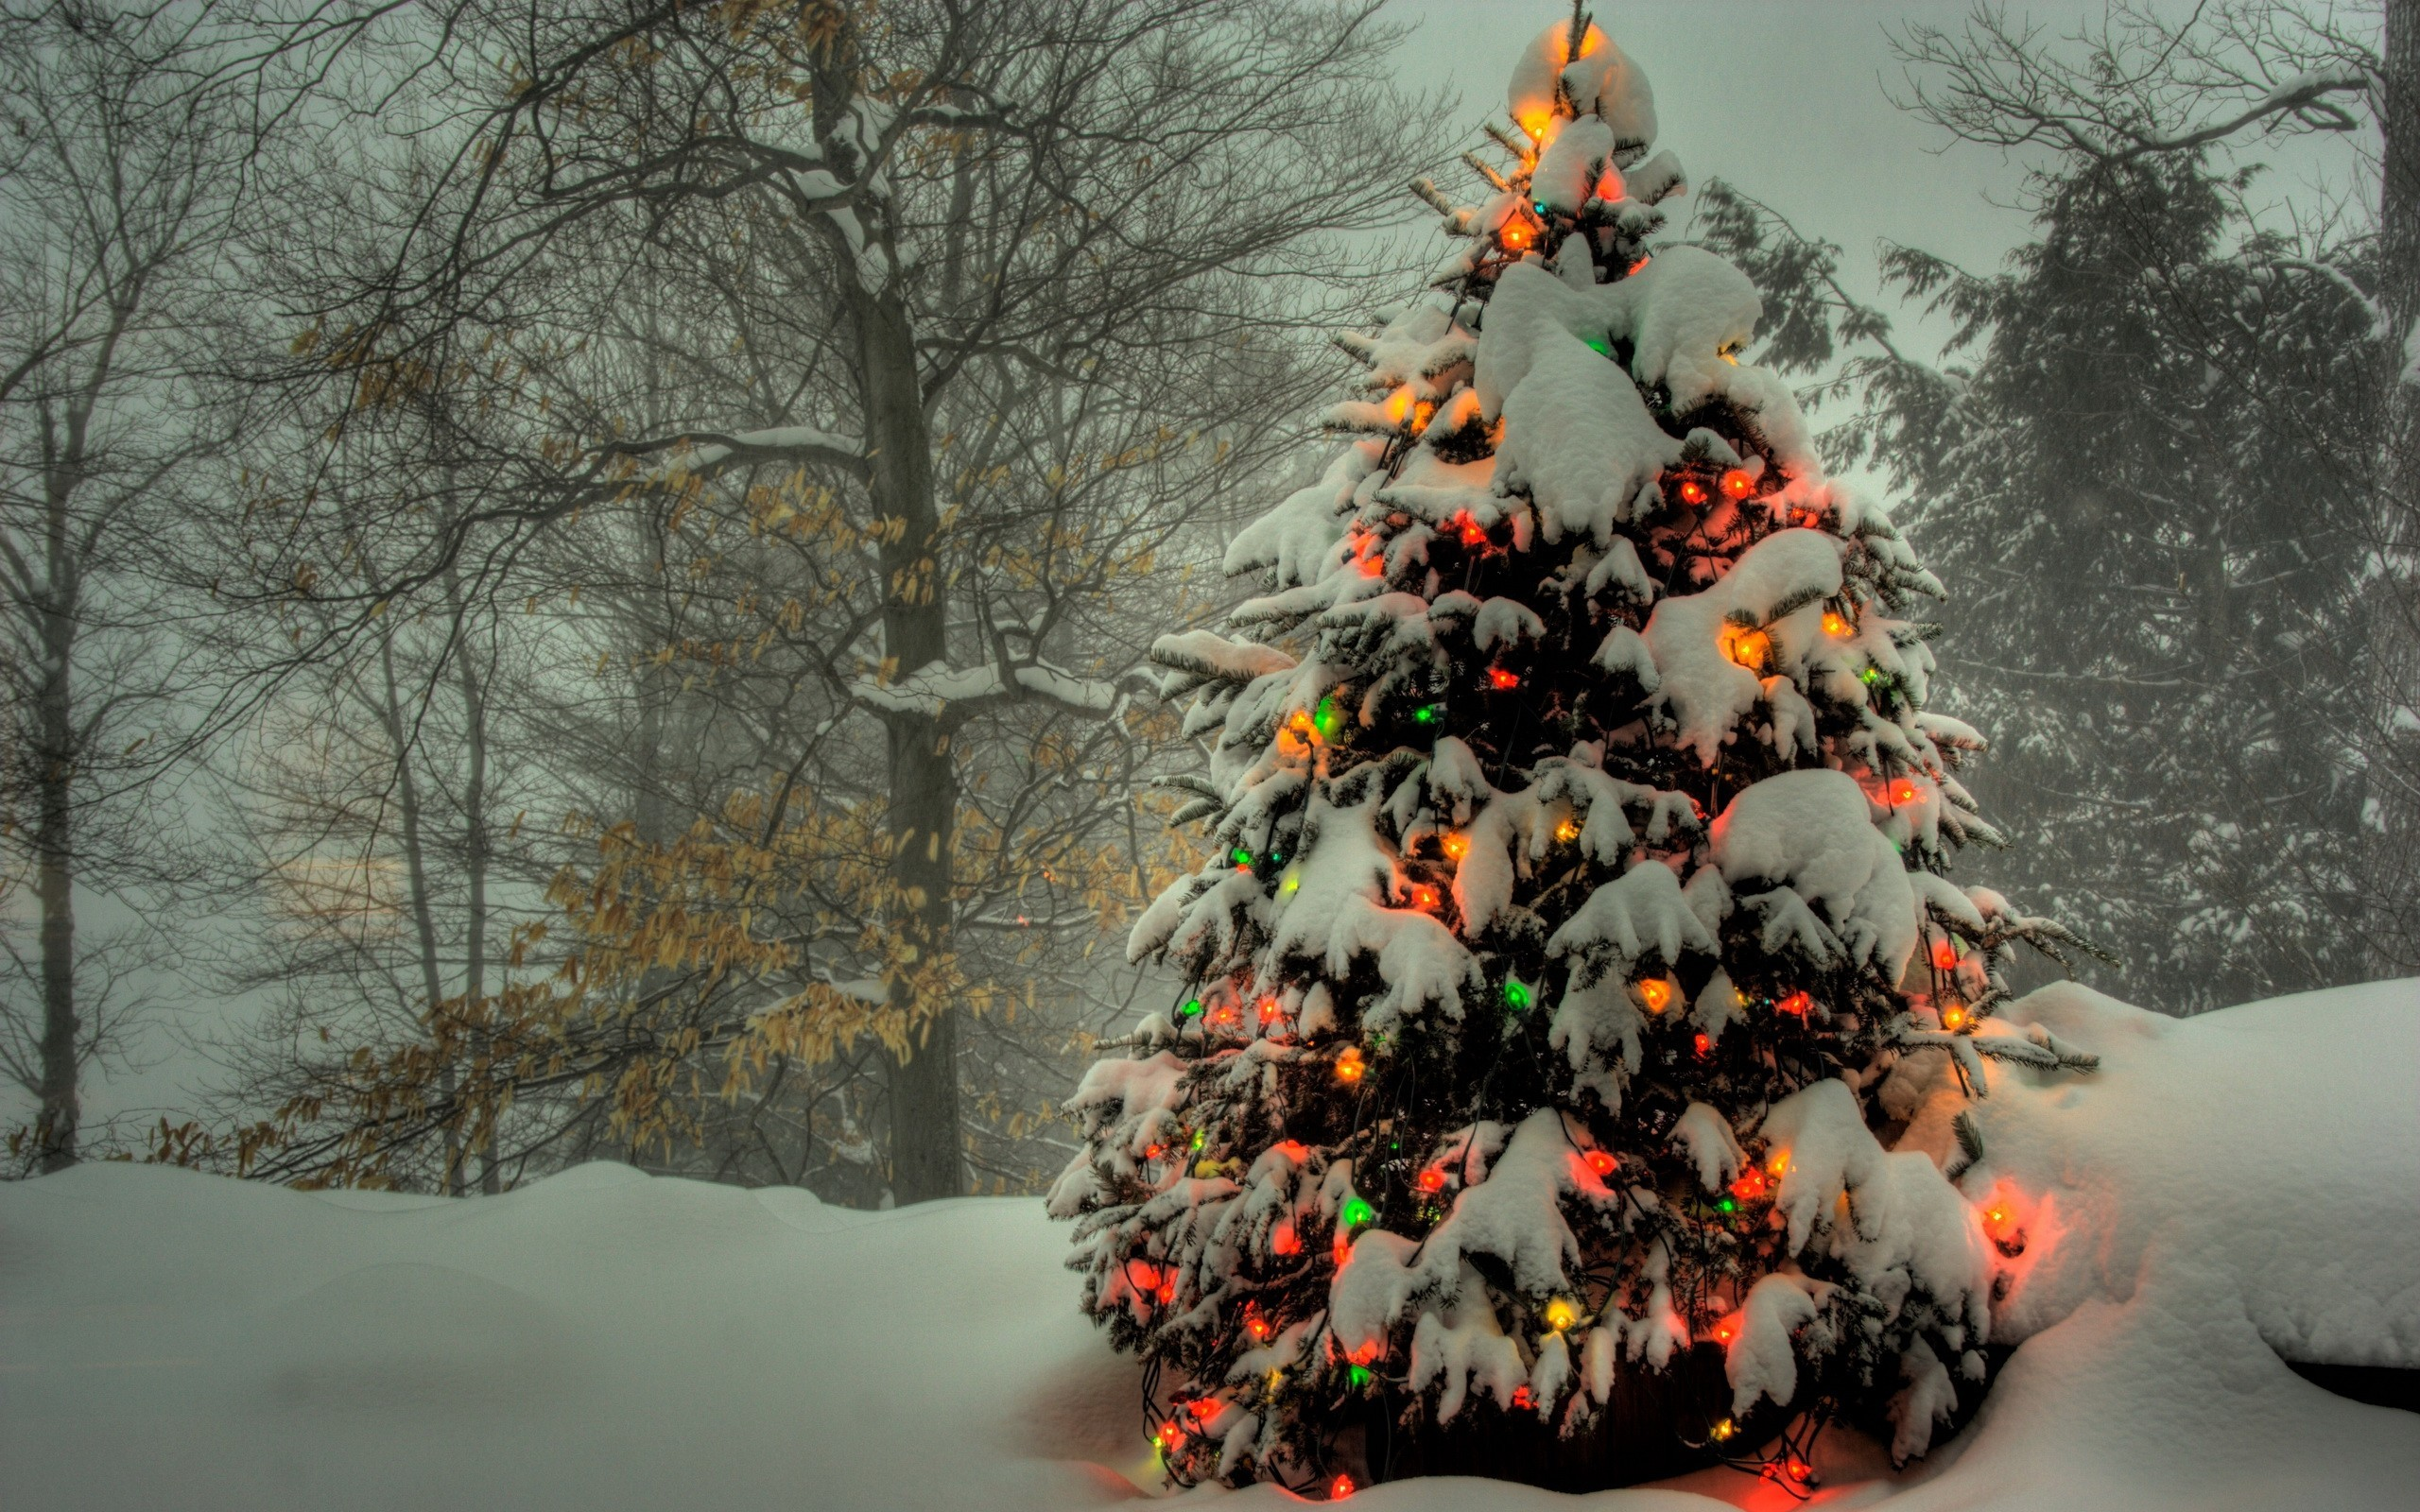 Live Snow Falling Wallpaper For Desktop Christmas Wallpaper Moving Snow Falling 72 Images